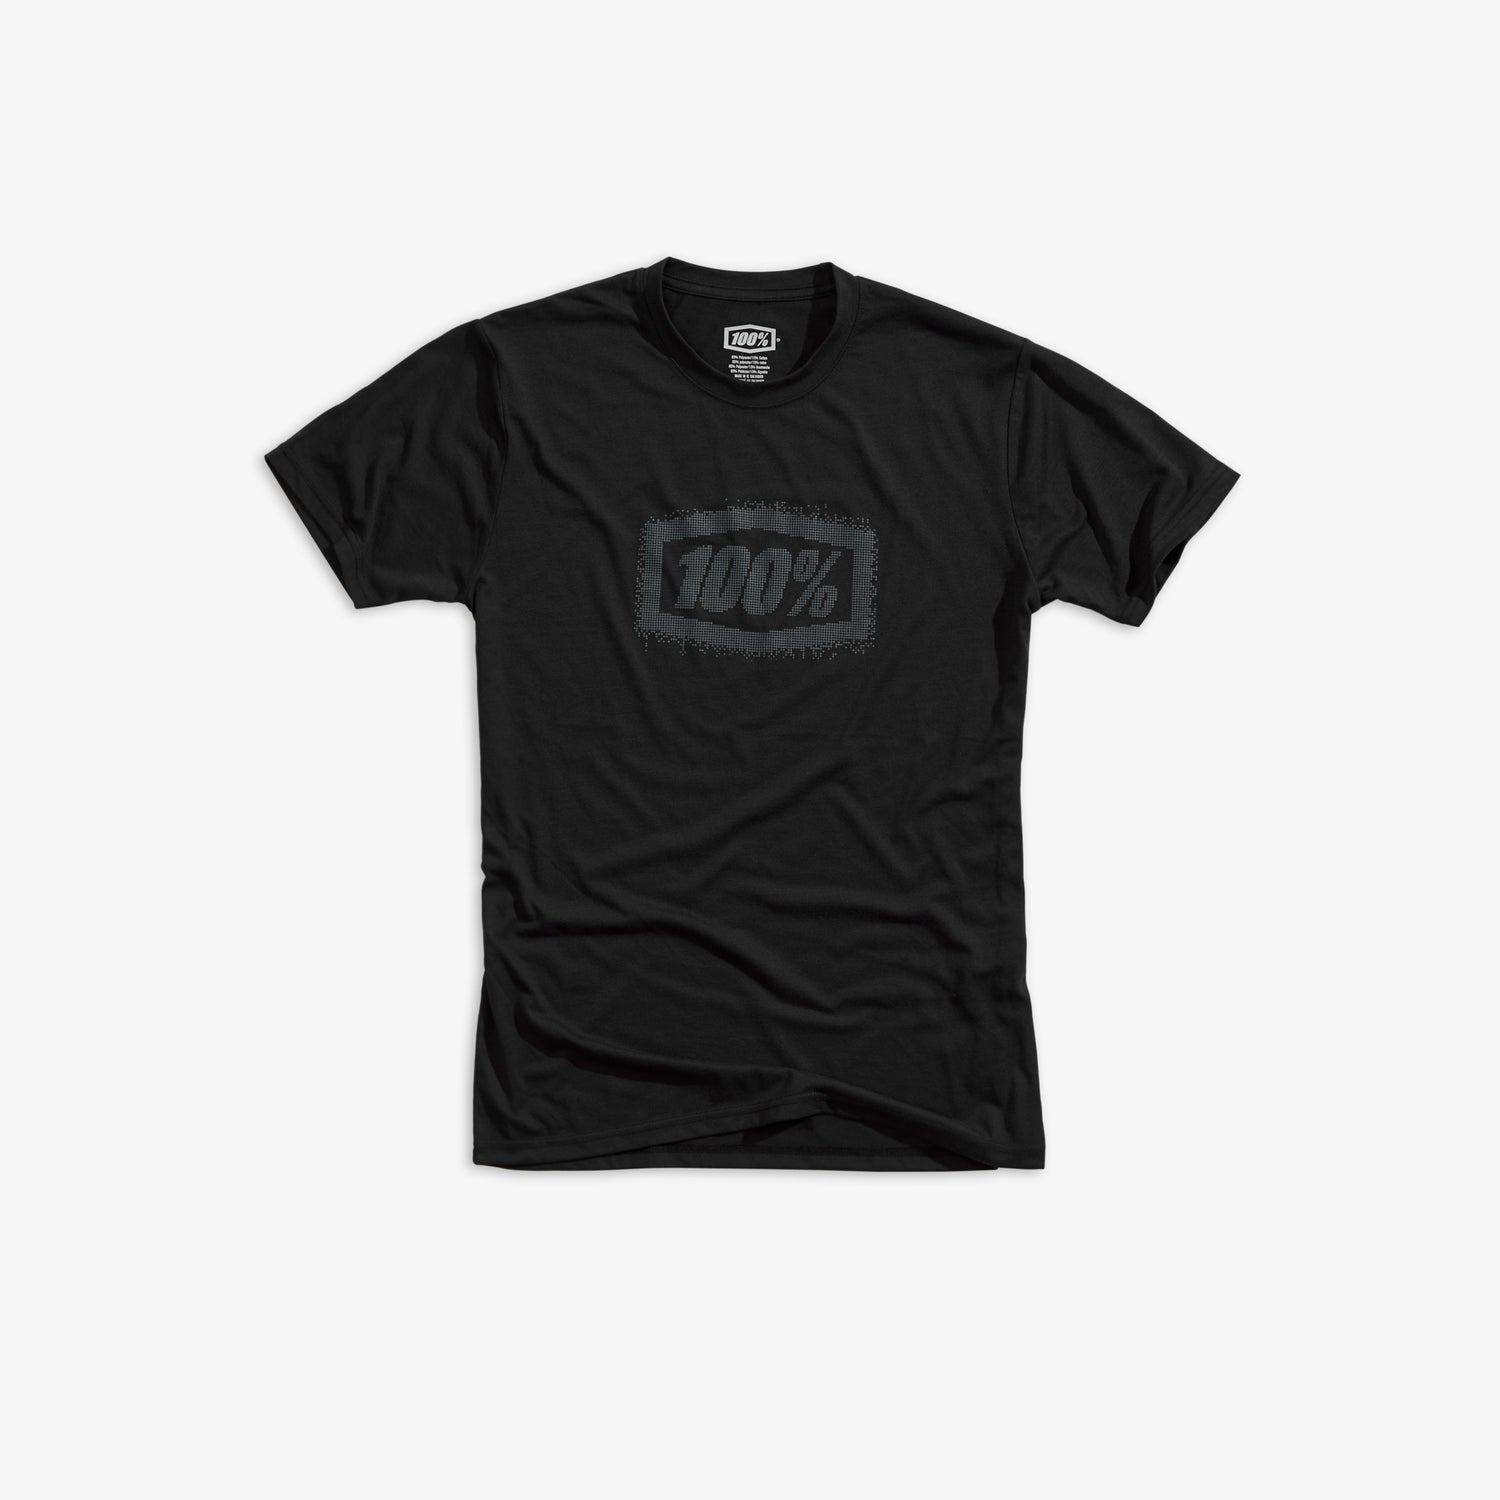 POSITIVE T-Shirt - Black - Youth